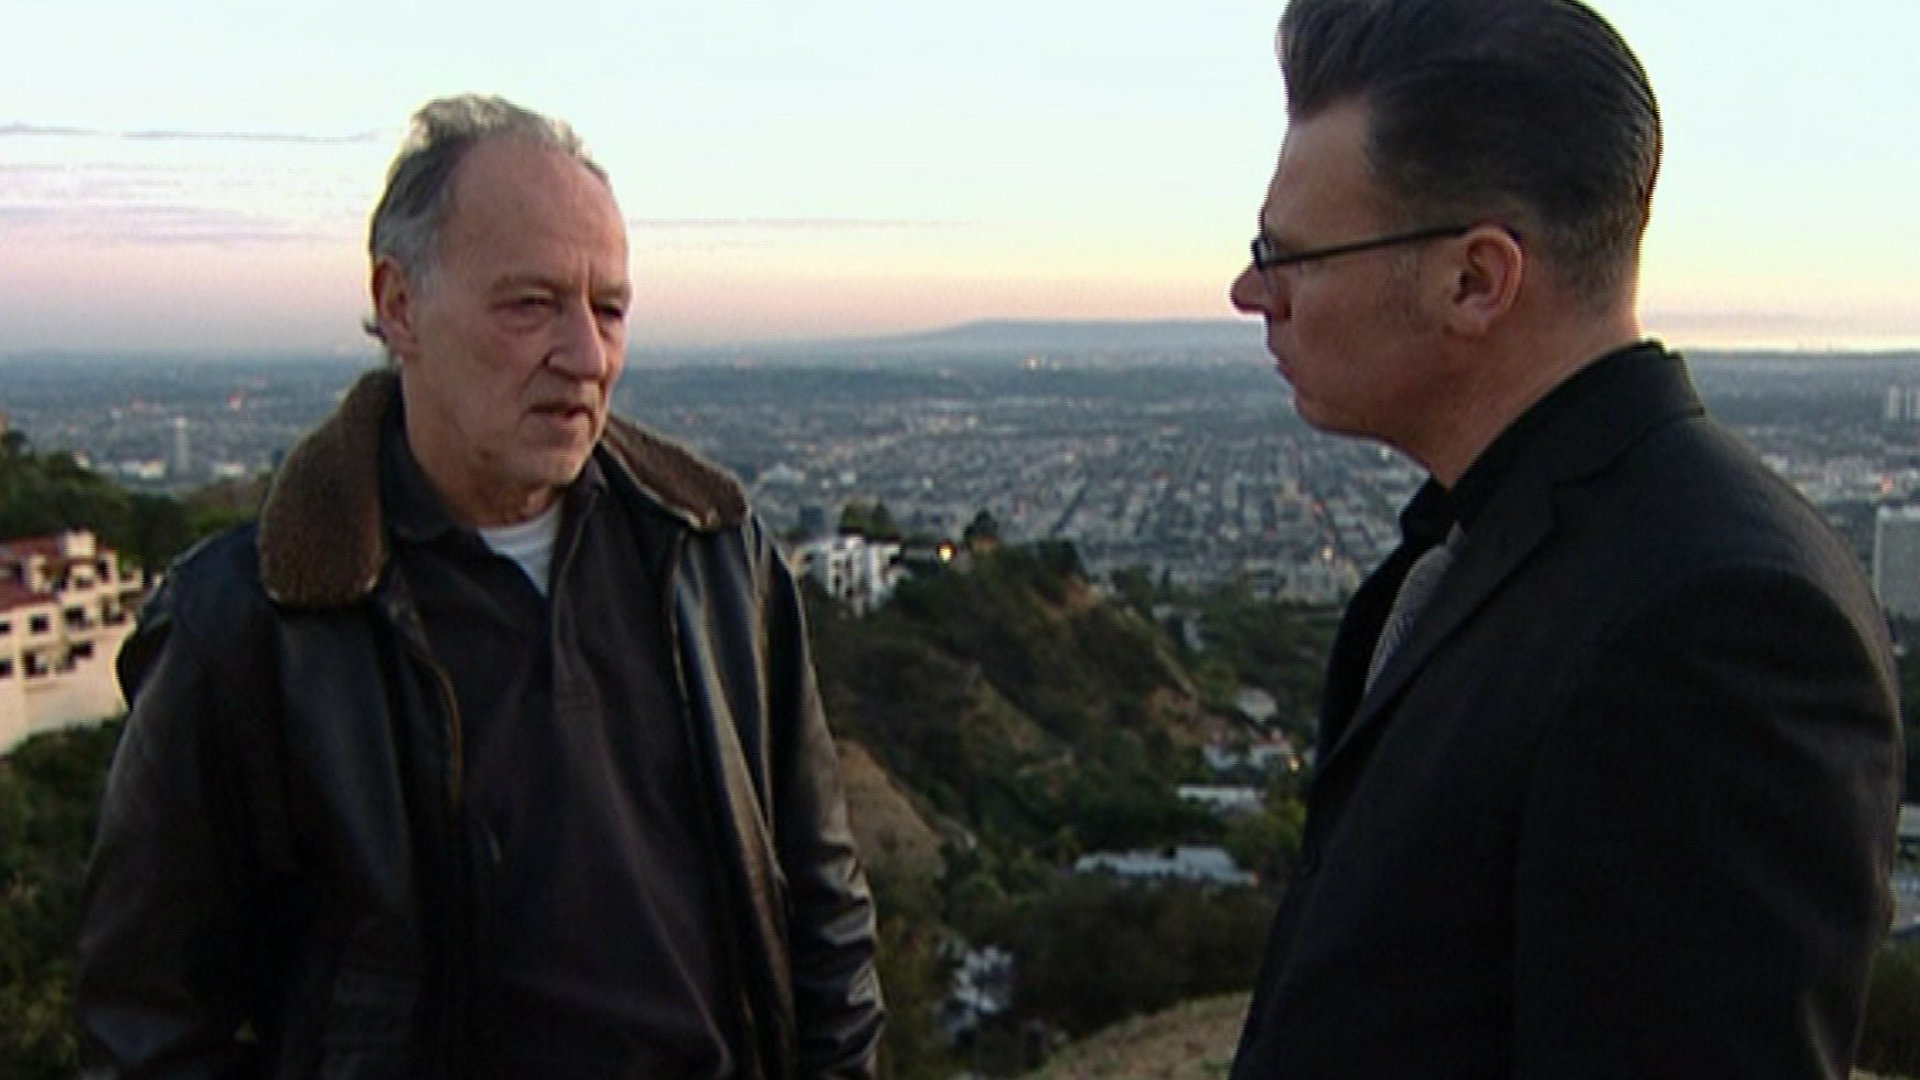 Werner Herzog Mark Kermode interview